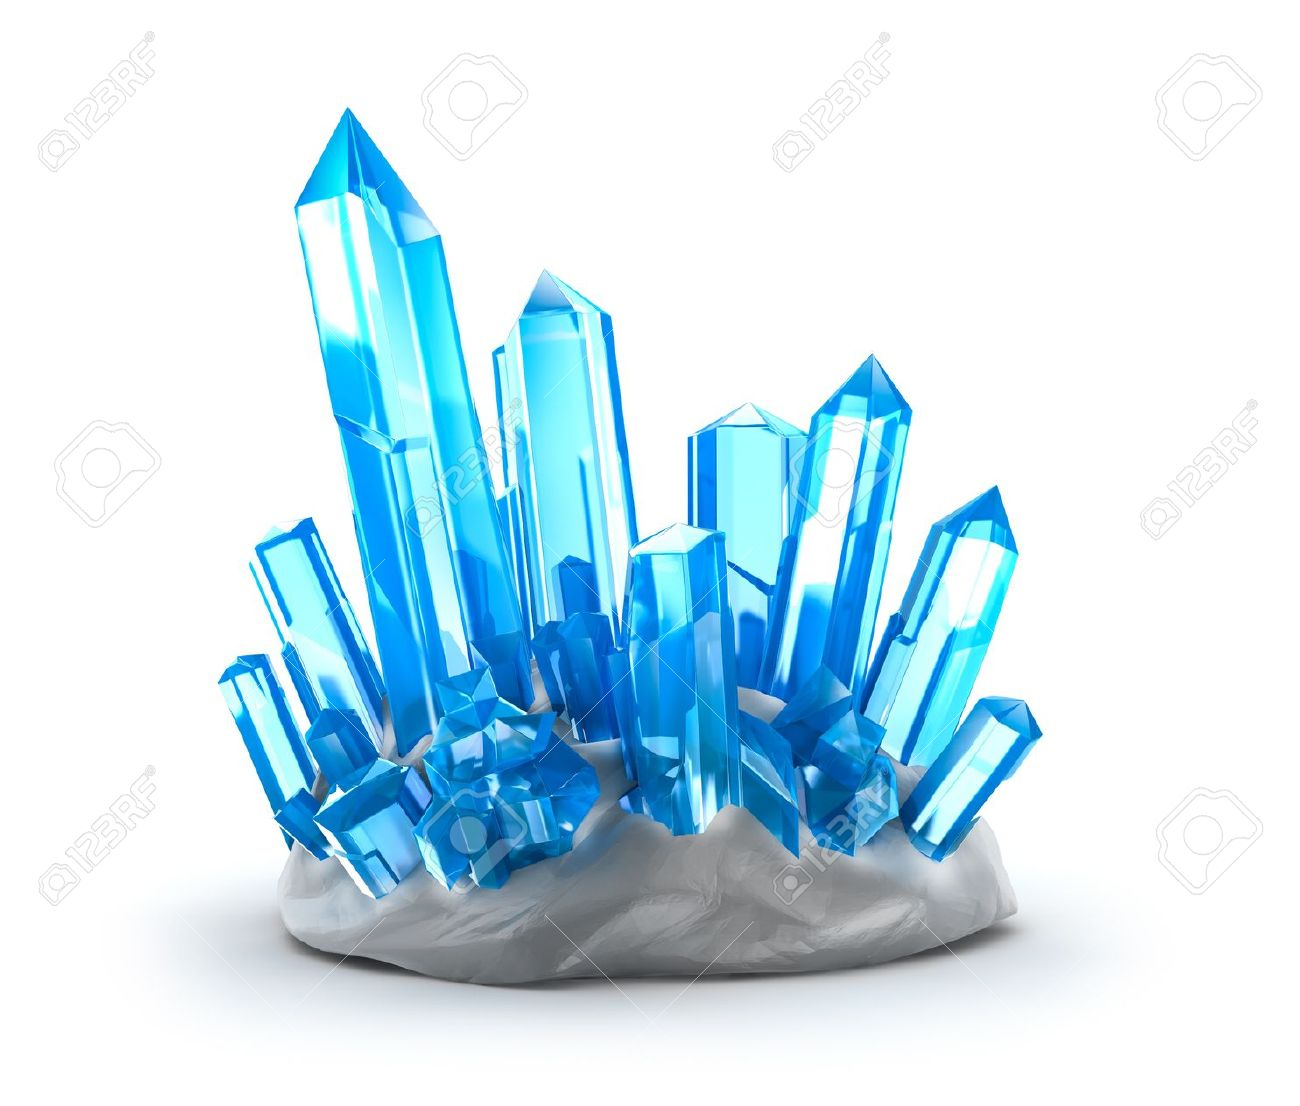 Crystal graphics clipart transparent download Hd crystal clear clipart - ClipartFox transparent download